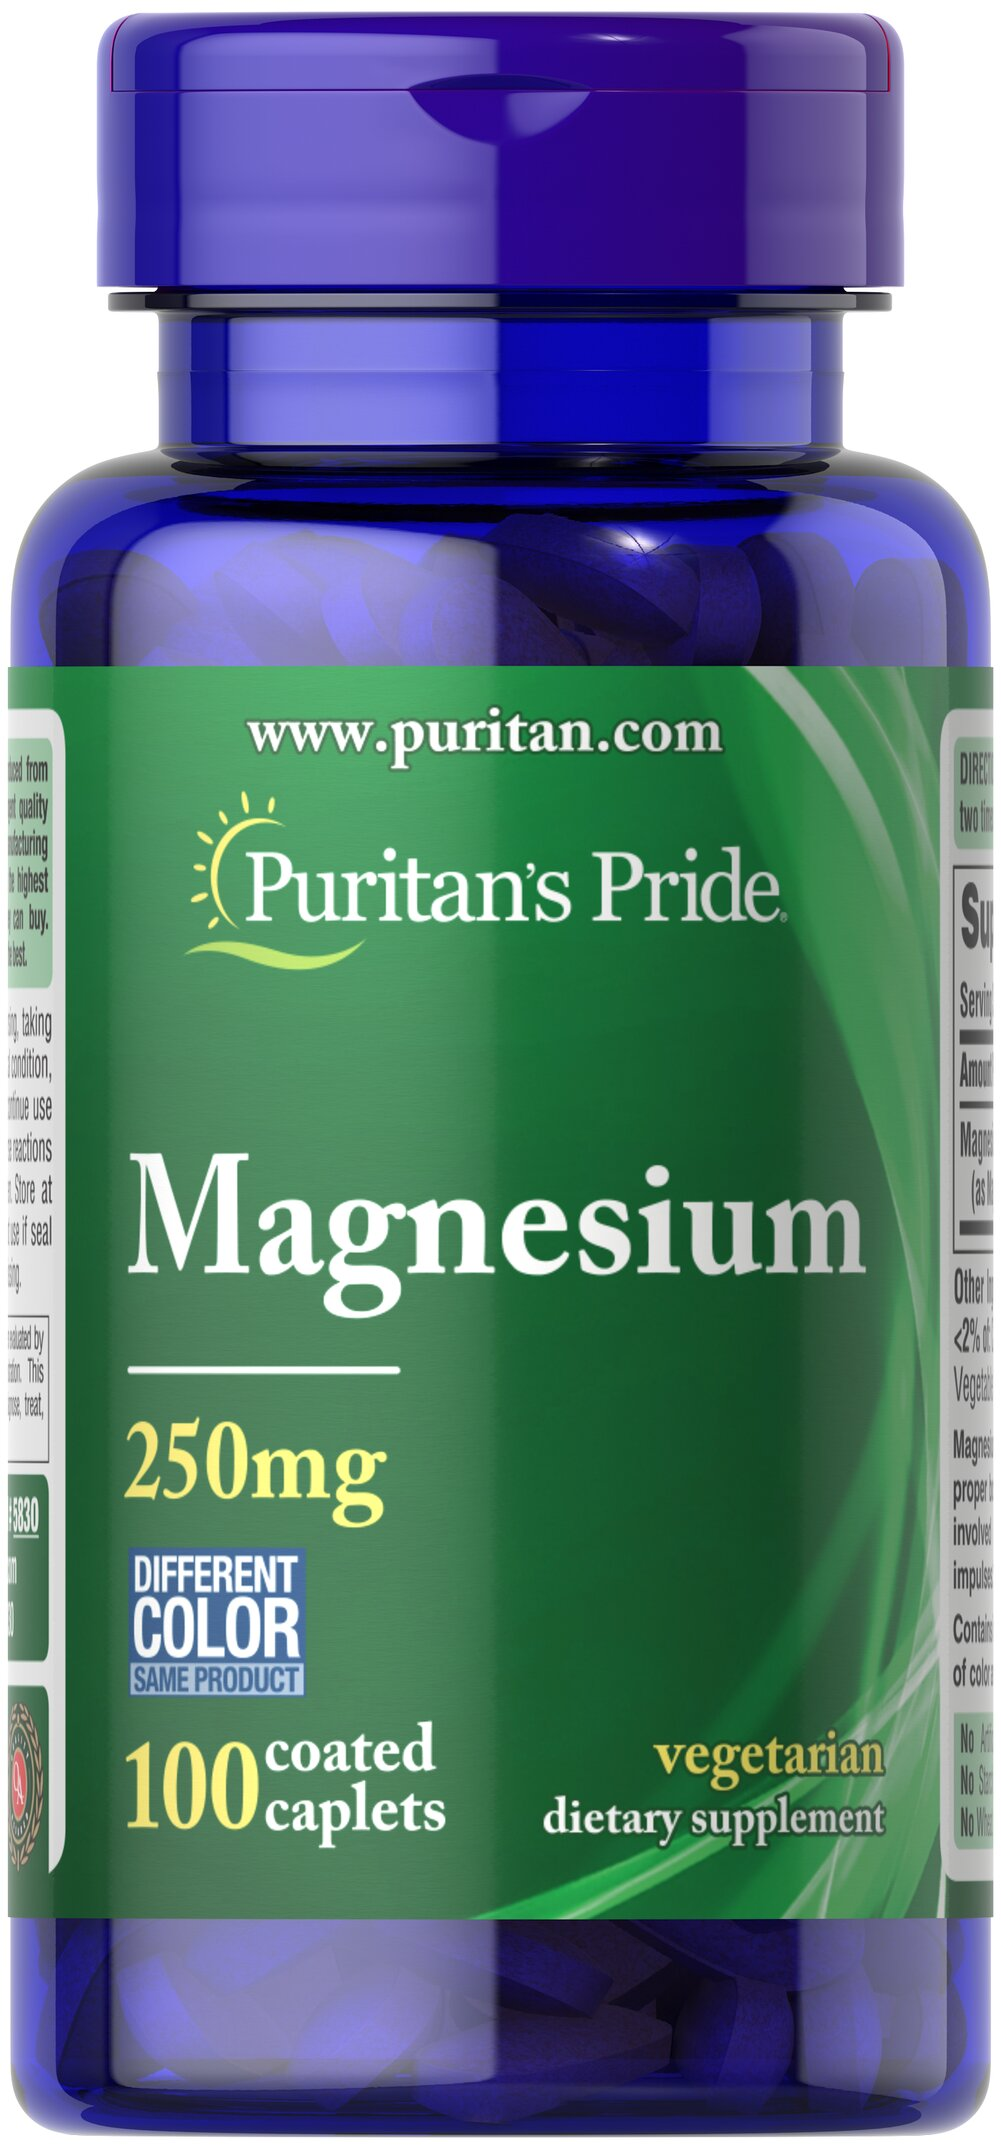 Magnesium 250 mg <p>Magnesium offers another option, besides Calcium, for supporting bone health.** Magnesium plays an essential role in maintaining bone mineralization, and is also involved in muscle contractions and nerve impulses.** Adults can take one caplet daily with a meal.</p> 100 Caplets 250 mg $5.58